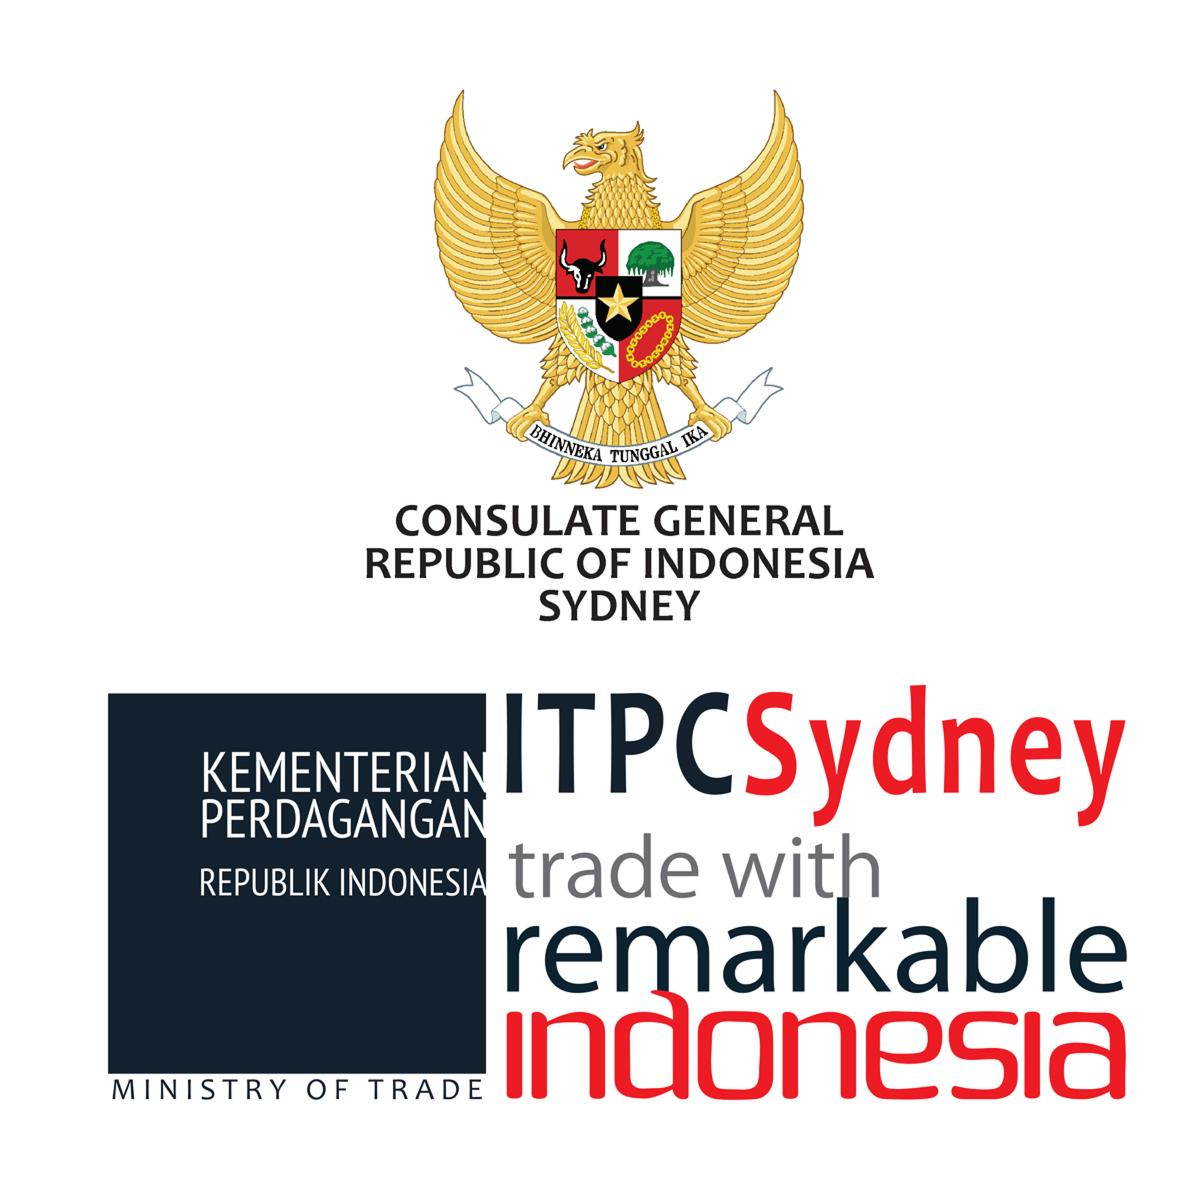 Consulate General of the Republic of Indonesia